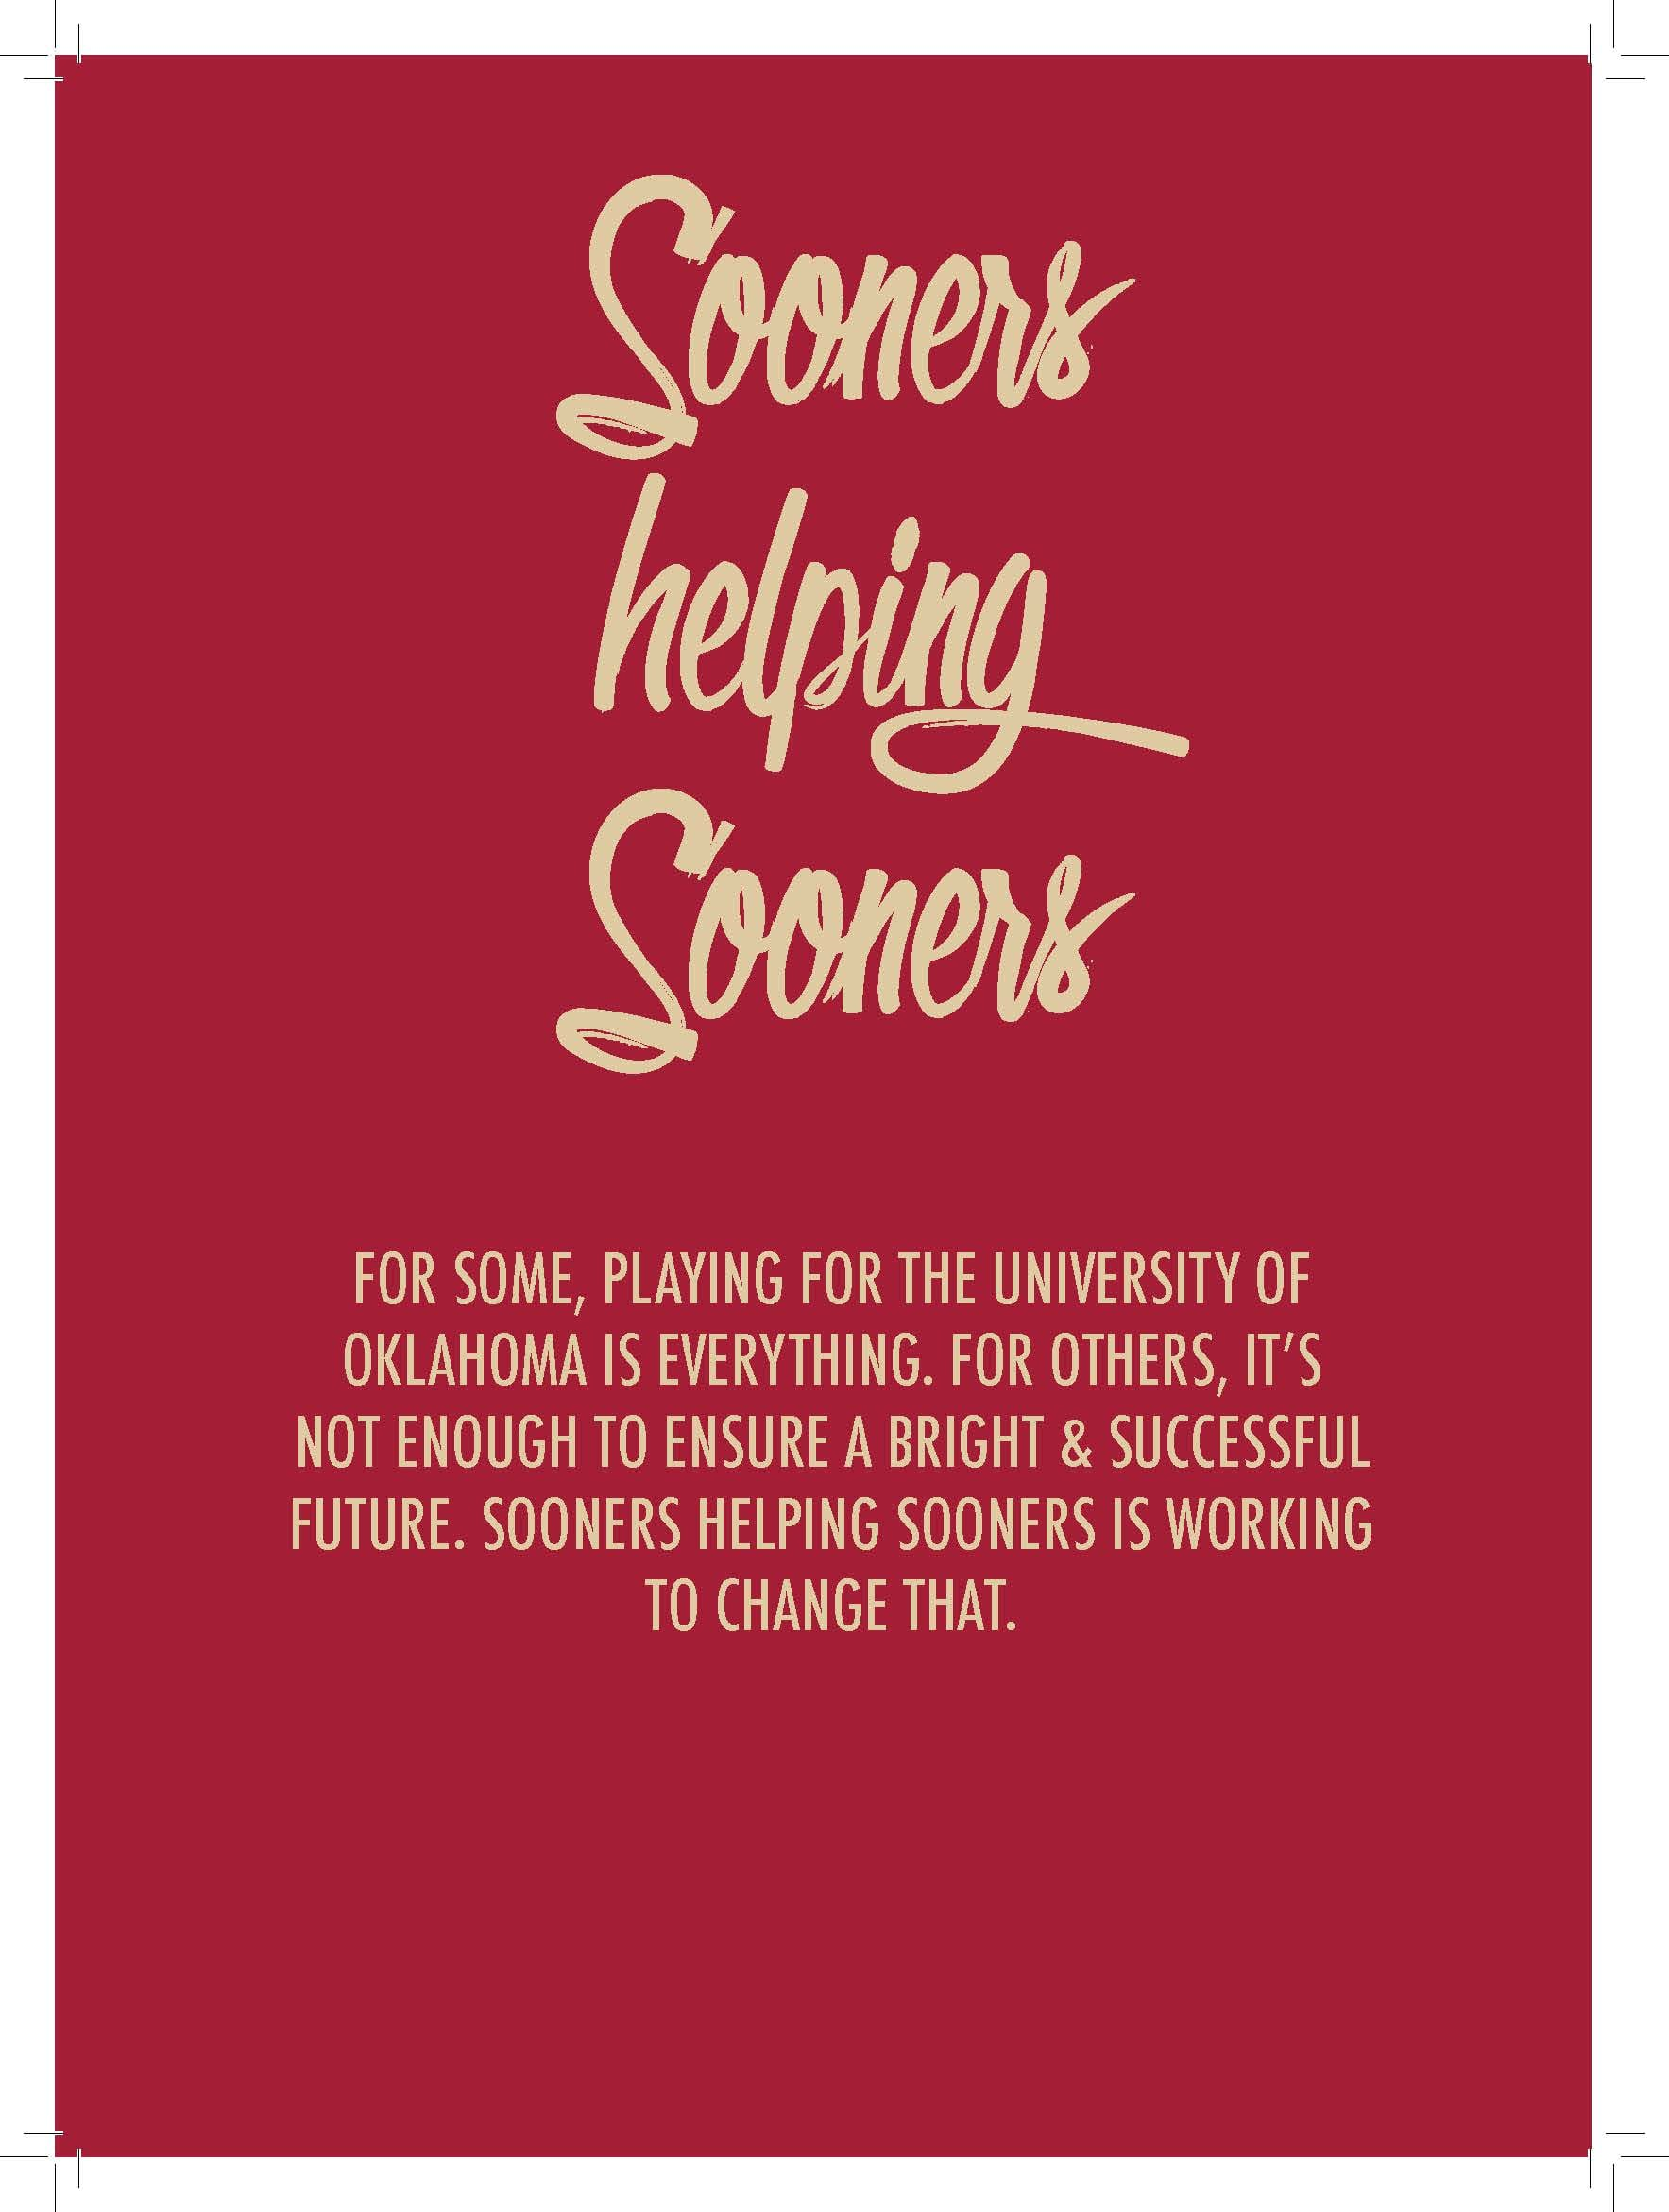 Sooners  helping  Sooners  FOR SOME, PLAYING FOR THE UNIVERSITY OF  OKLAHOMA IS EVERYTHING. FOR OTHERS, IT'S  NOT ENOUGH TO ENSURE A BRIGHT & SUCCESSFUL  FUTURE. SOONERS HELPING SOONERS IS WORKING  TO CHANGE THAT.